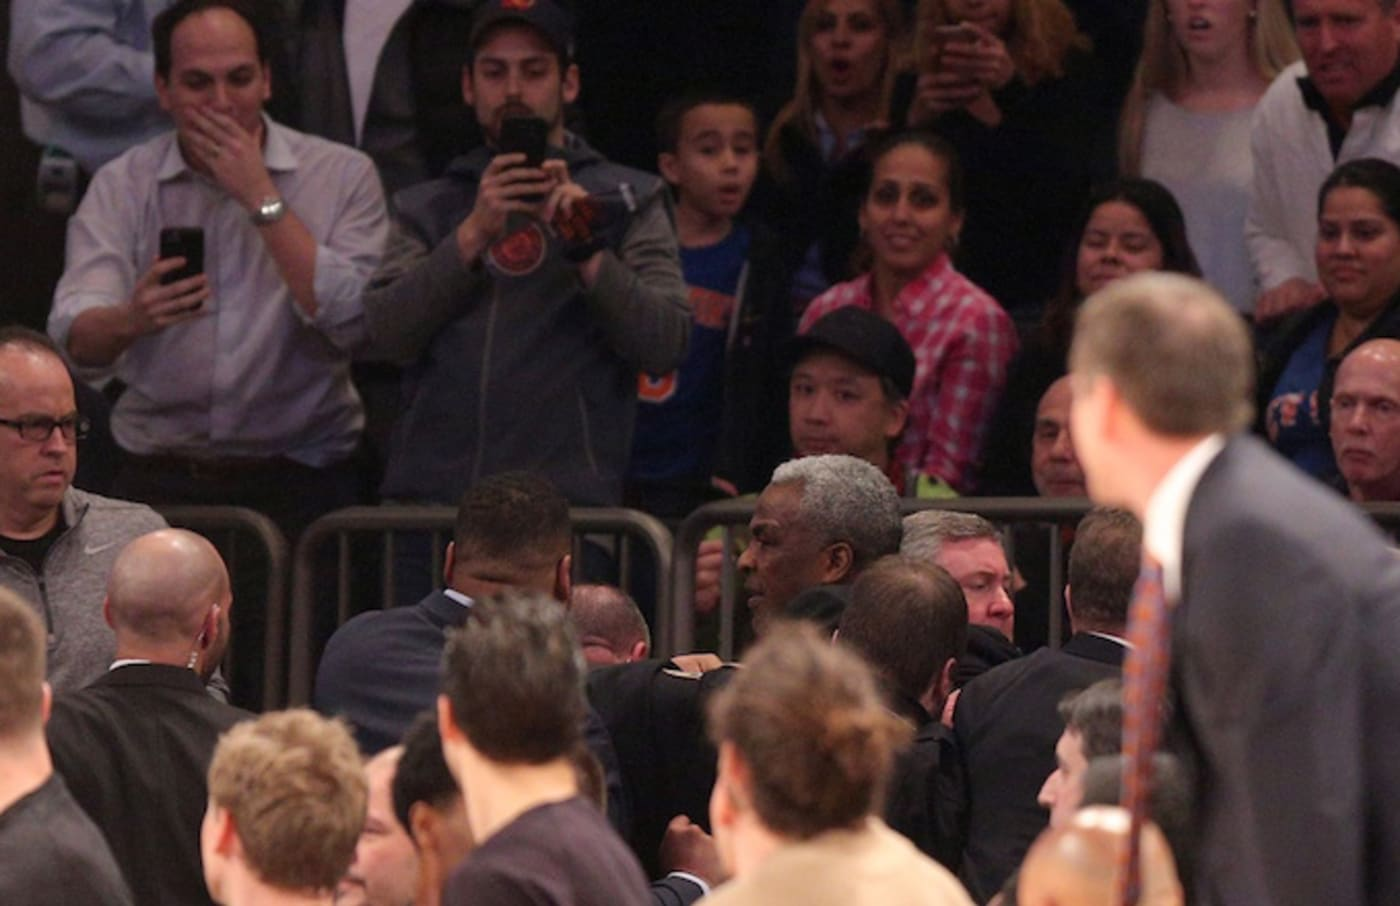 Charles Oakley gets ejected from Madison Square Garden.